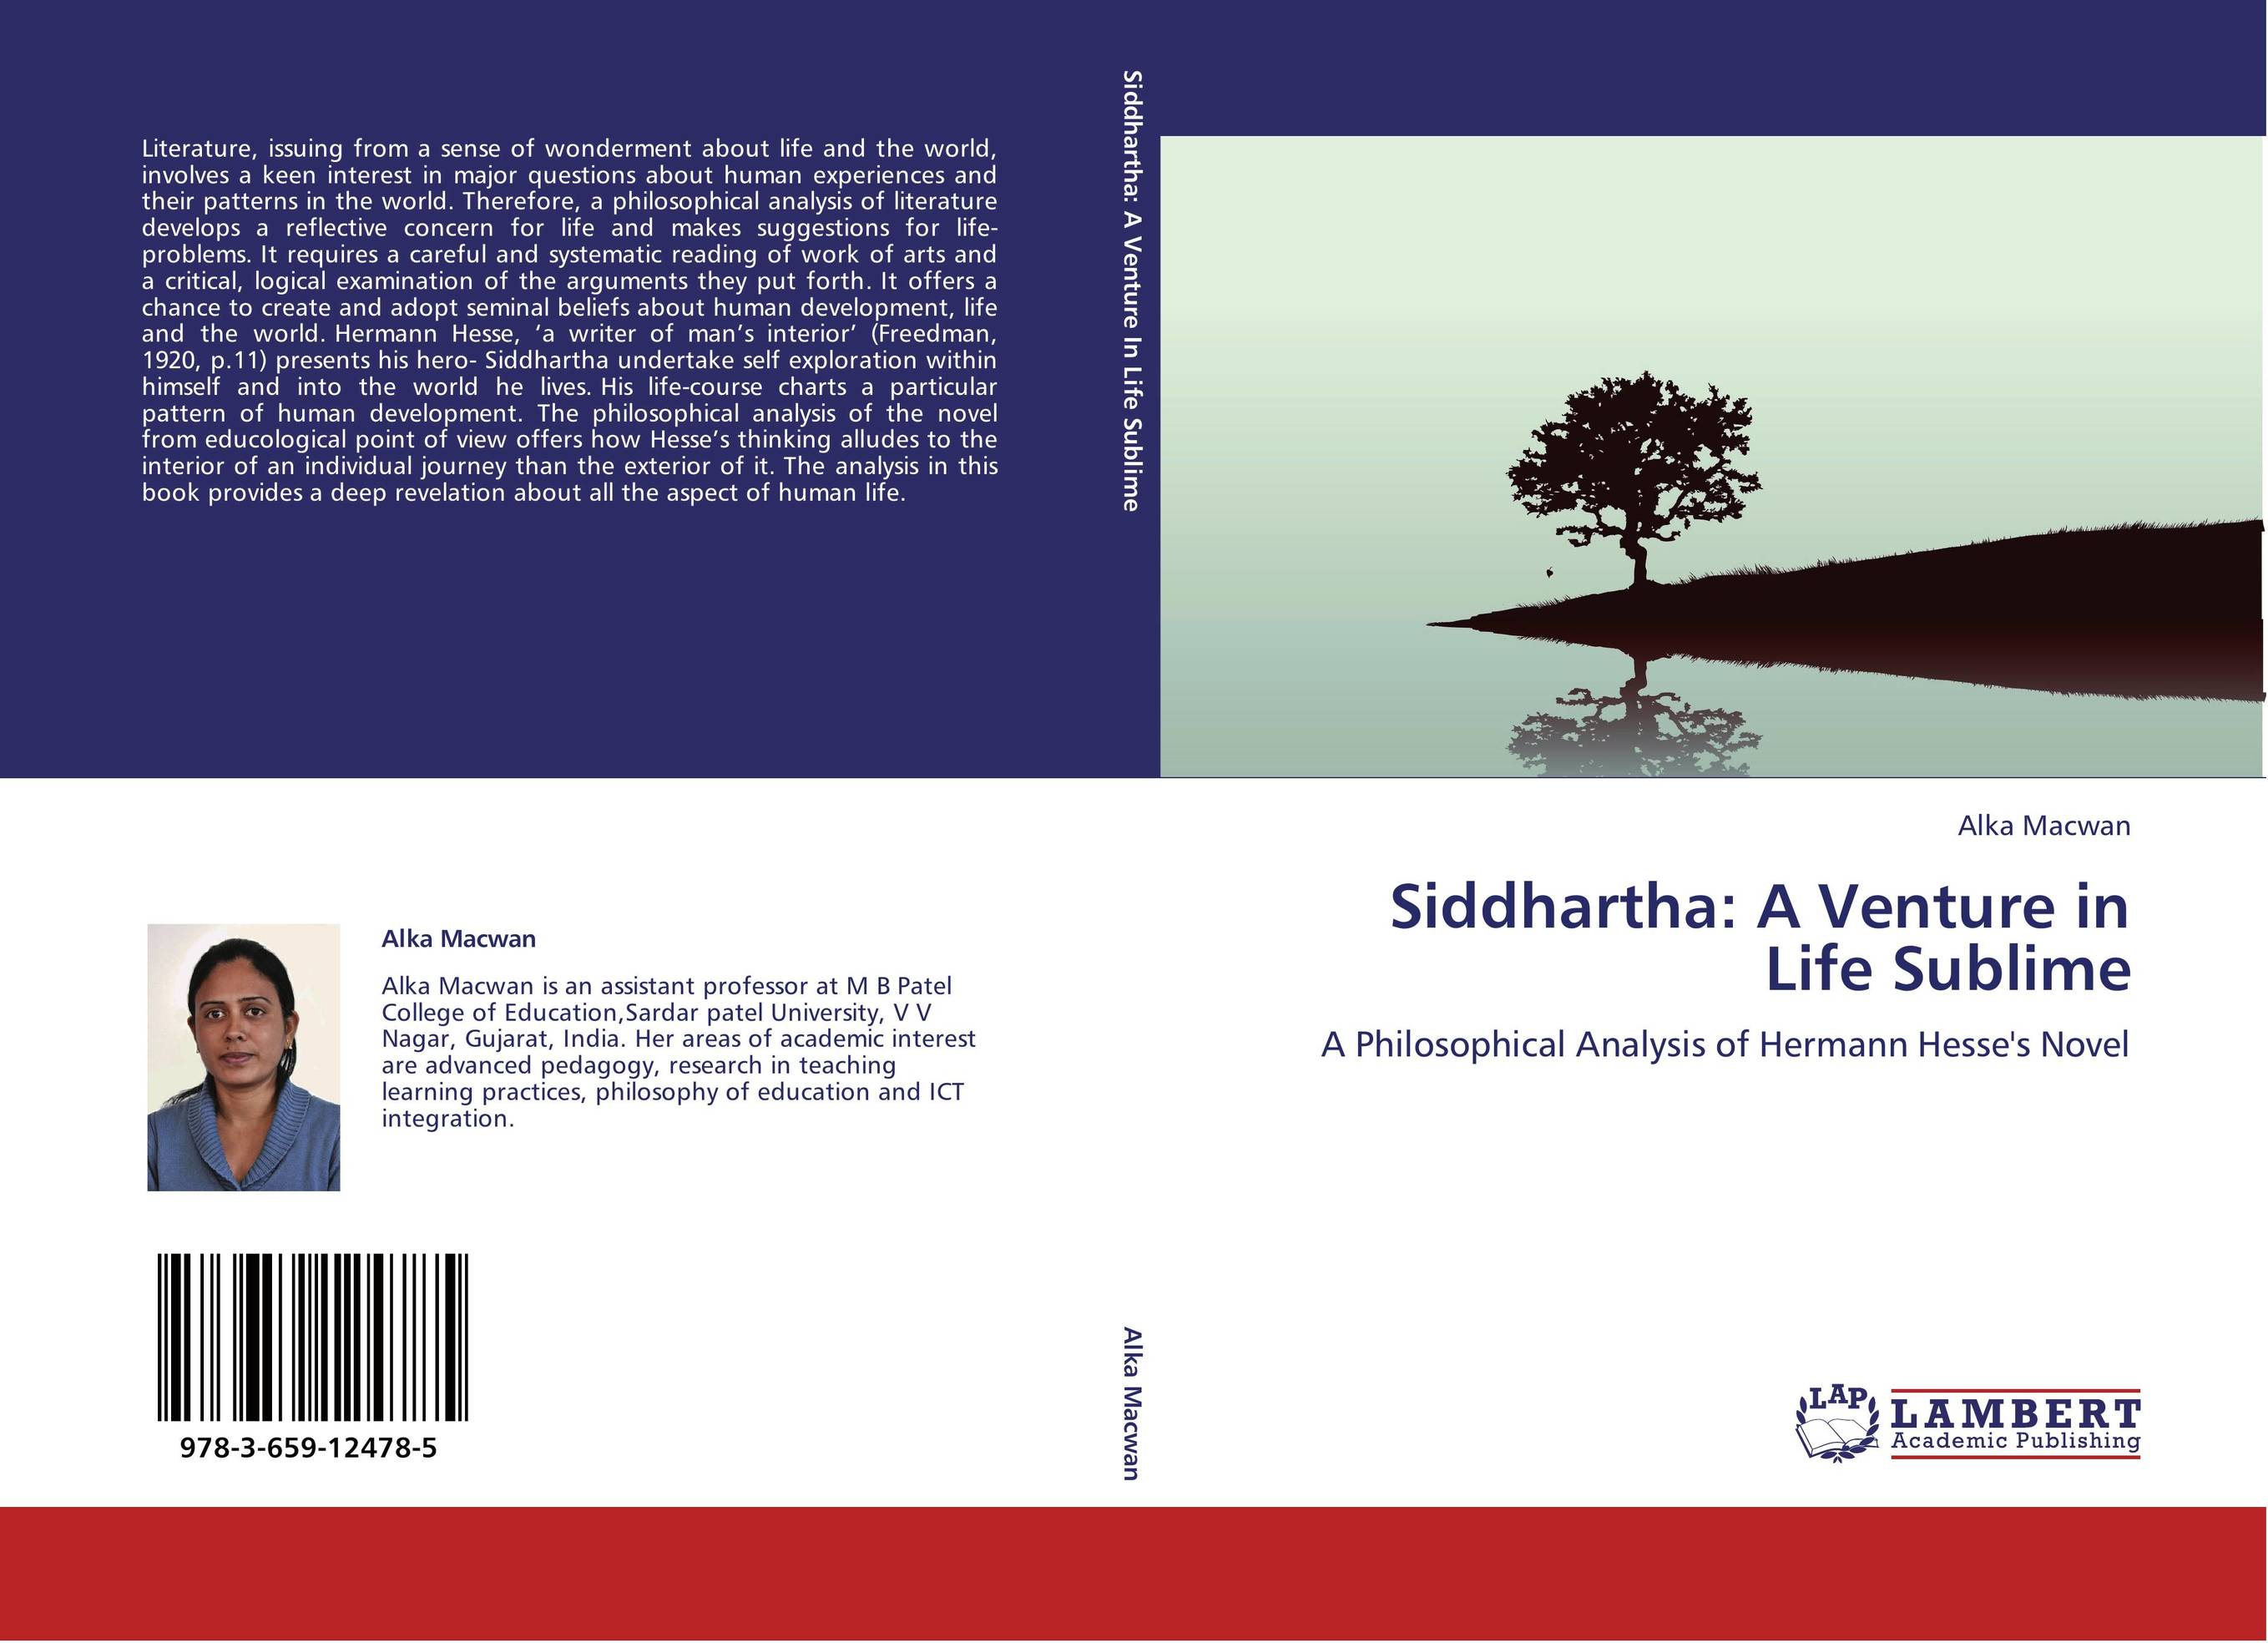 an analysis of the philosophical foundations of heroism Philosophical foundation argues for clarity over and against meaninglessness, which is implicit in various forms of skepticism and fideism throughout the book, critical analysis is applied to unexamined assumptions in the areas of metaphysics and ethics in order to address long-standing disputes.